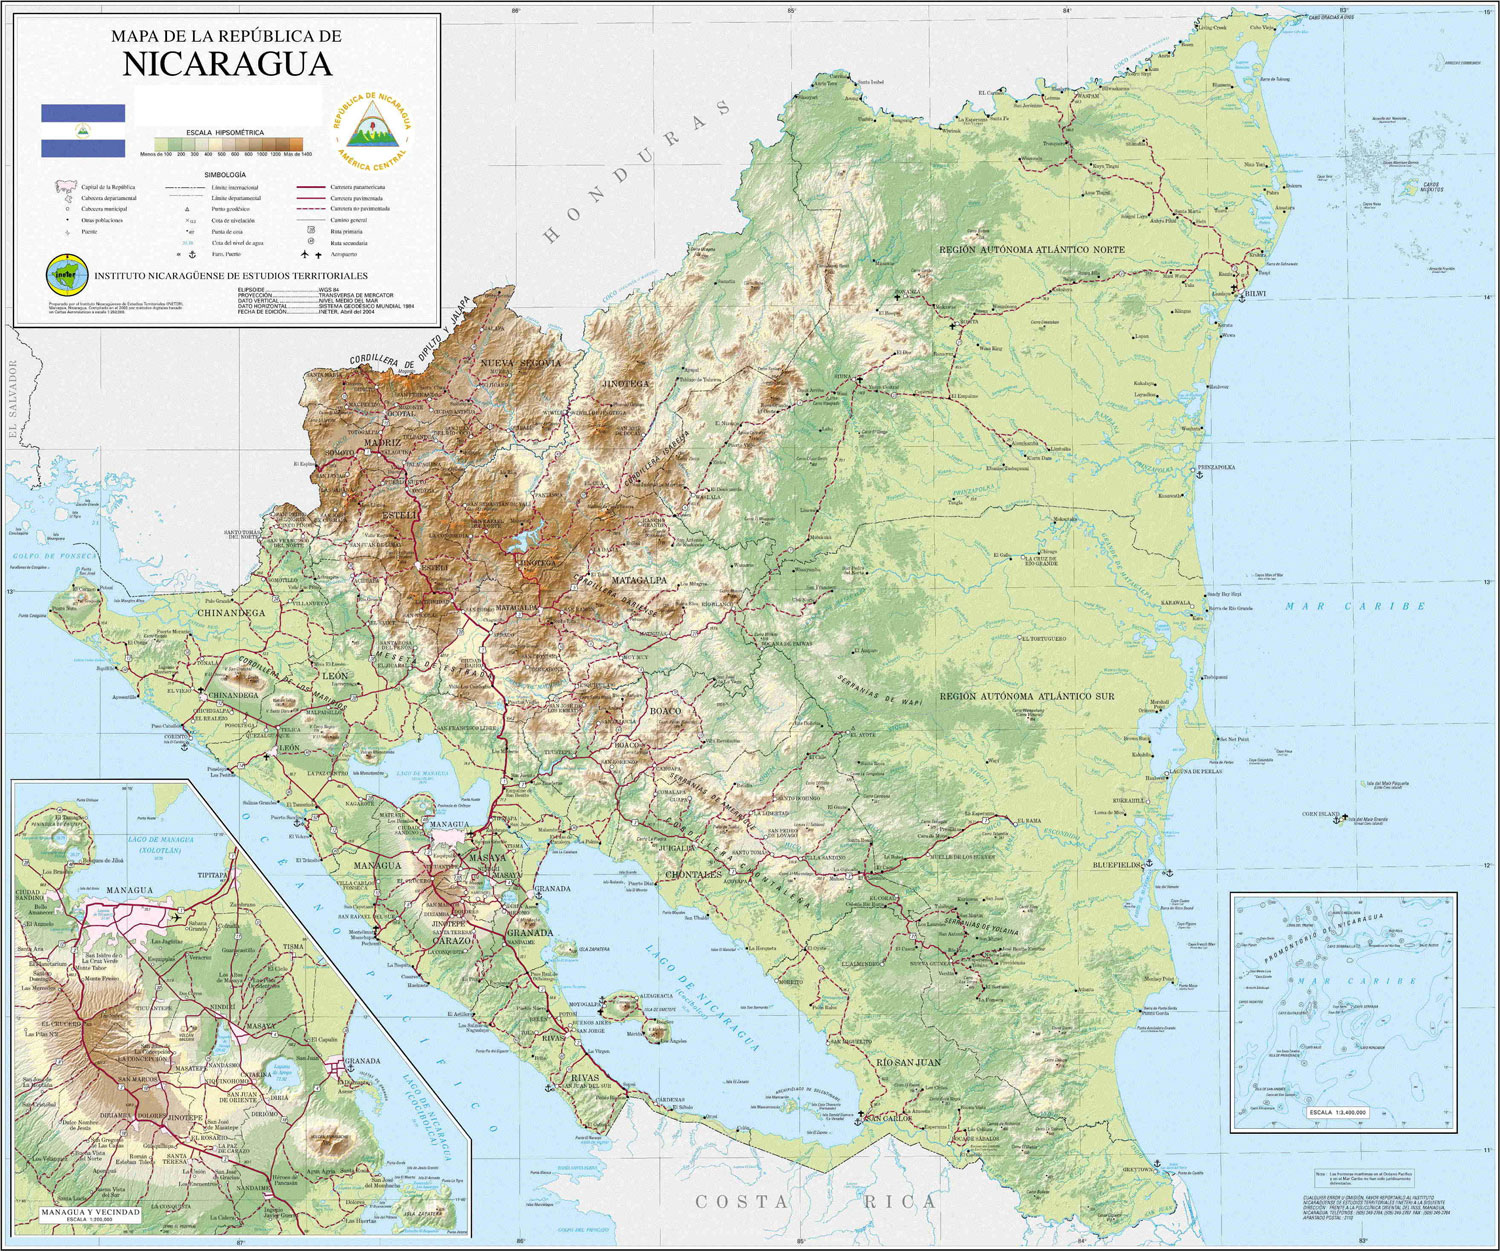 Maps Of Nicaragua Map Library Maps Of The World - Map nicaragua